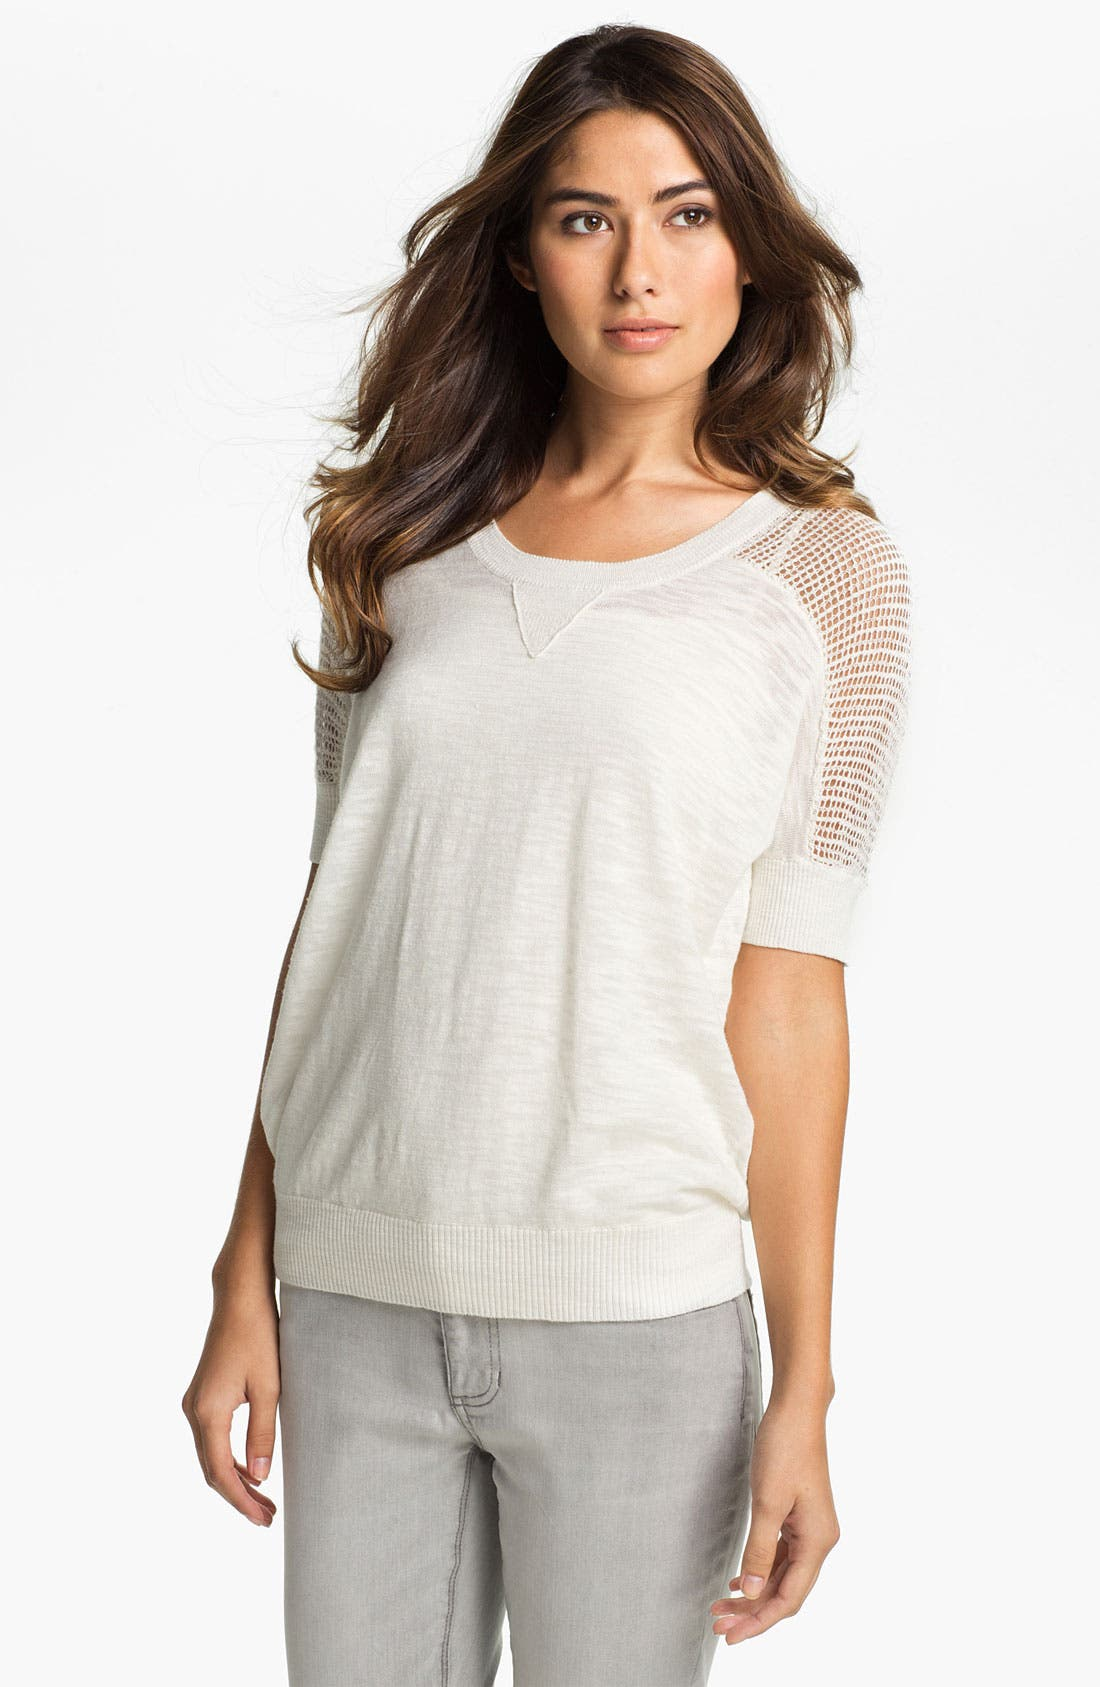 Alternate Image 1 Selected - Two by Vince Camuto Jersey & Open Stitch Sweater